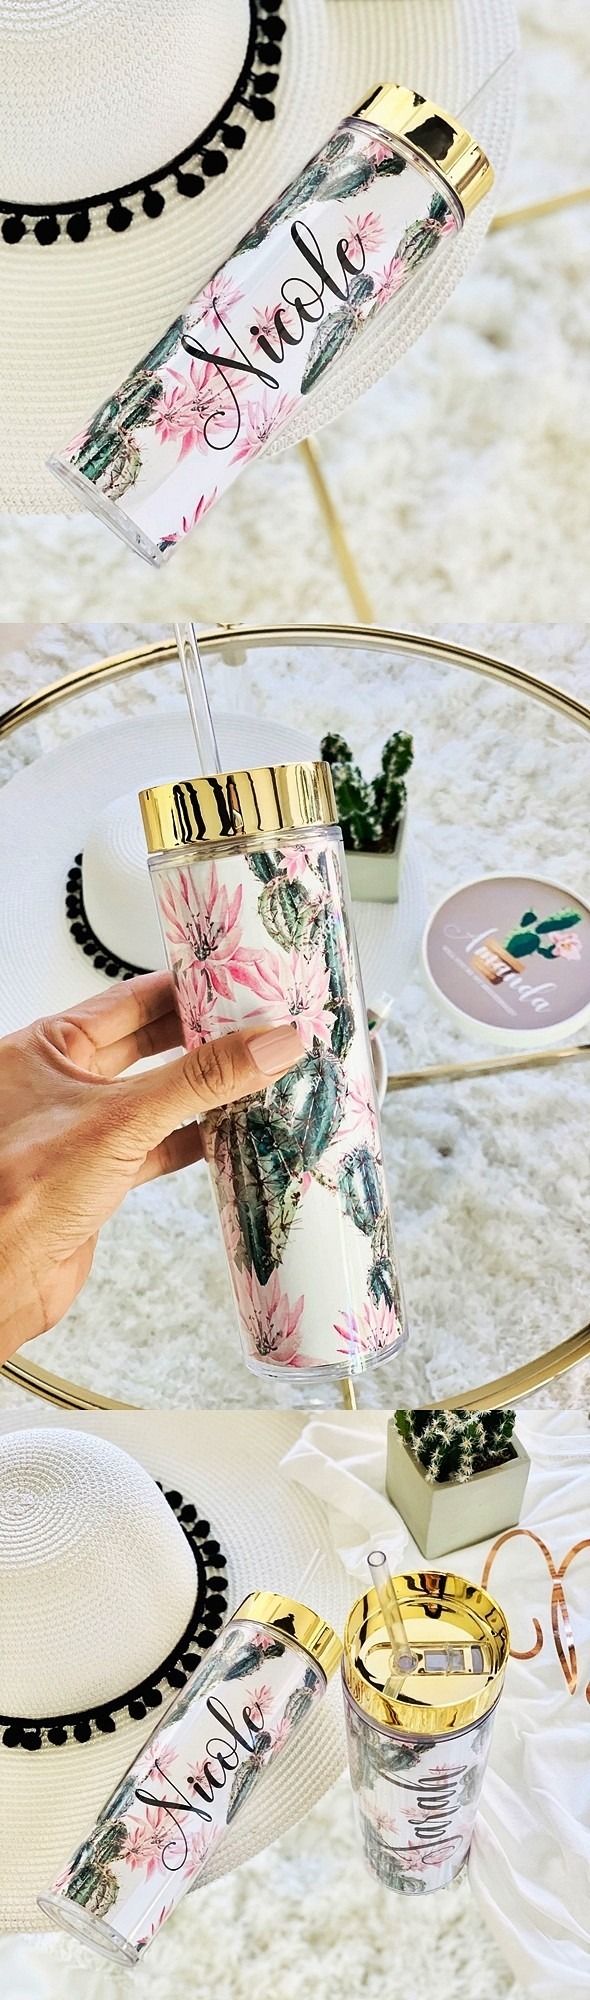 Event Blossom Cactus Design Personalized Tumbler with Gold Lid & Straw